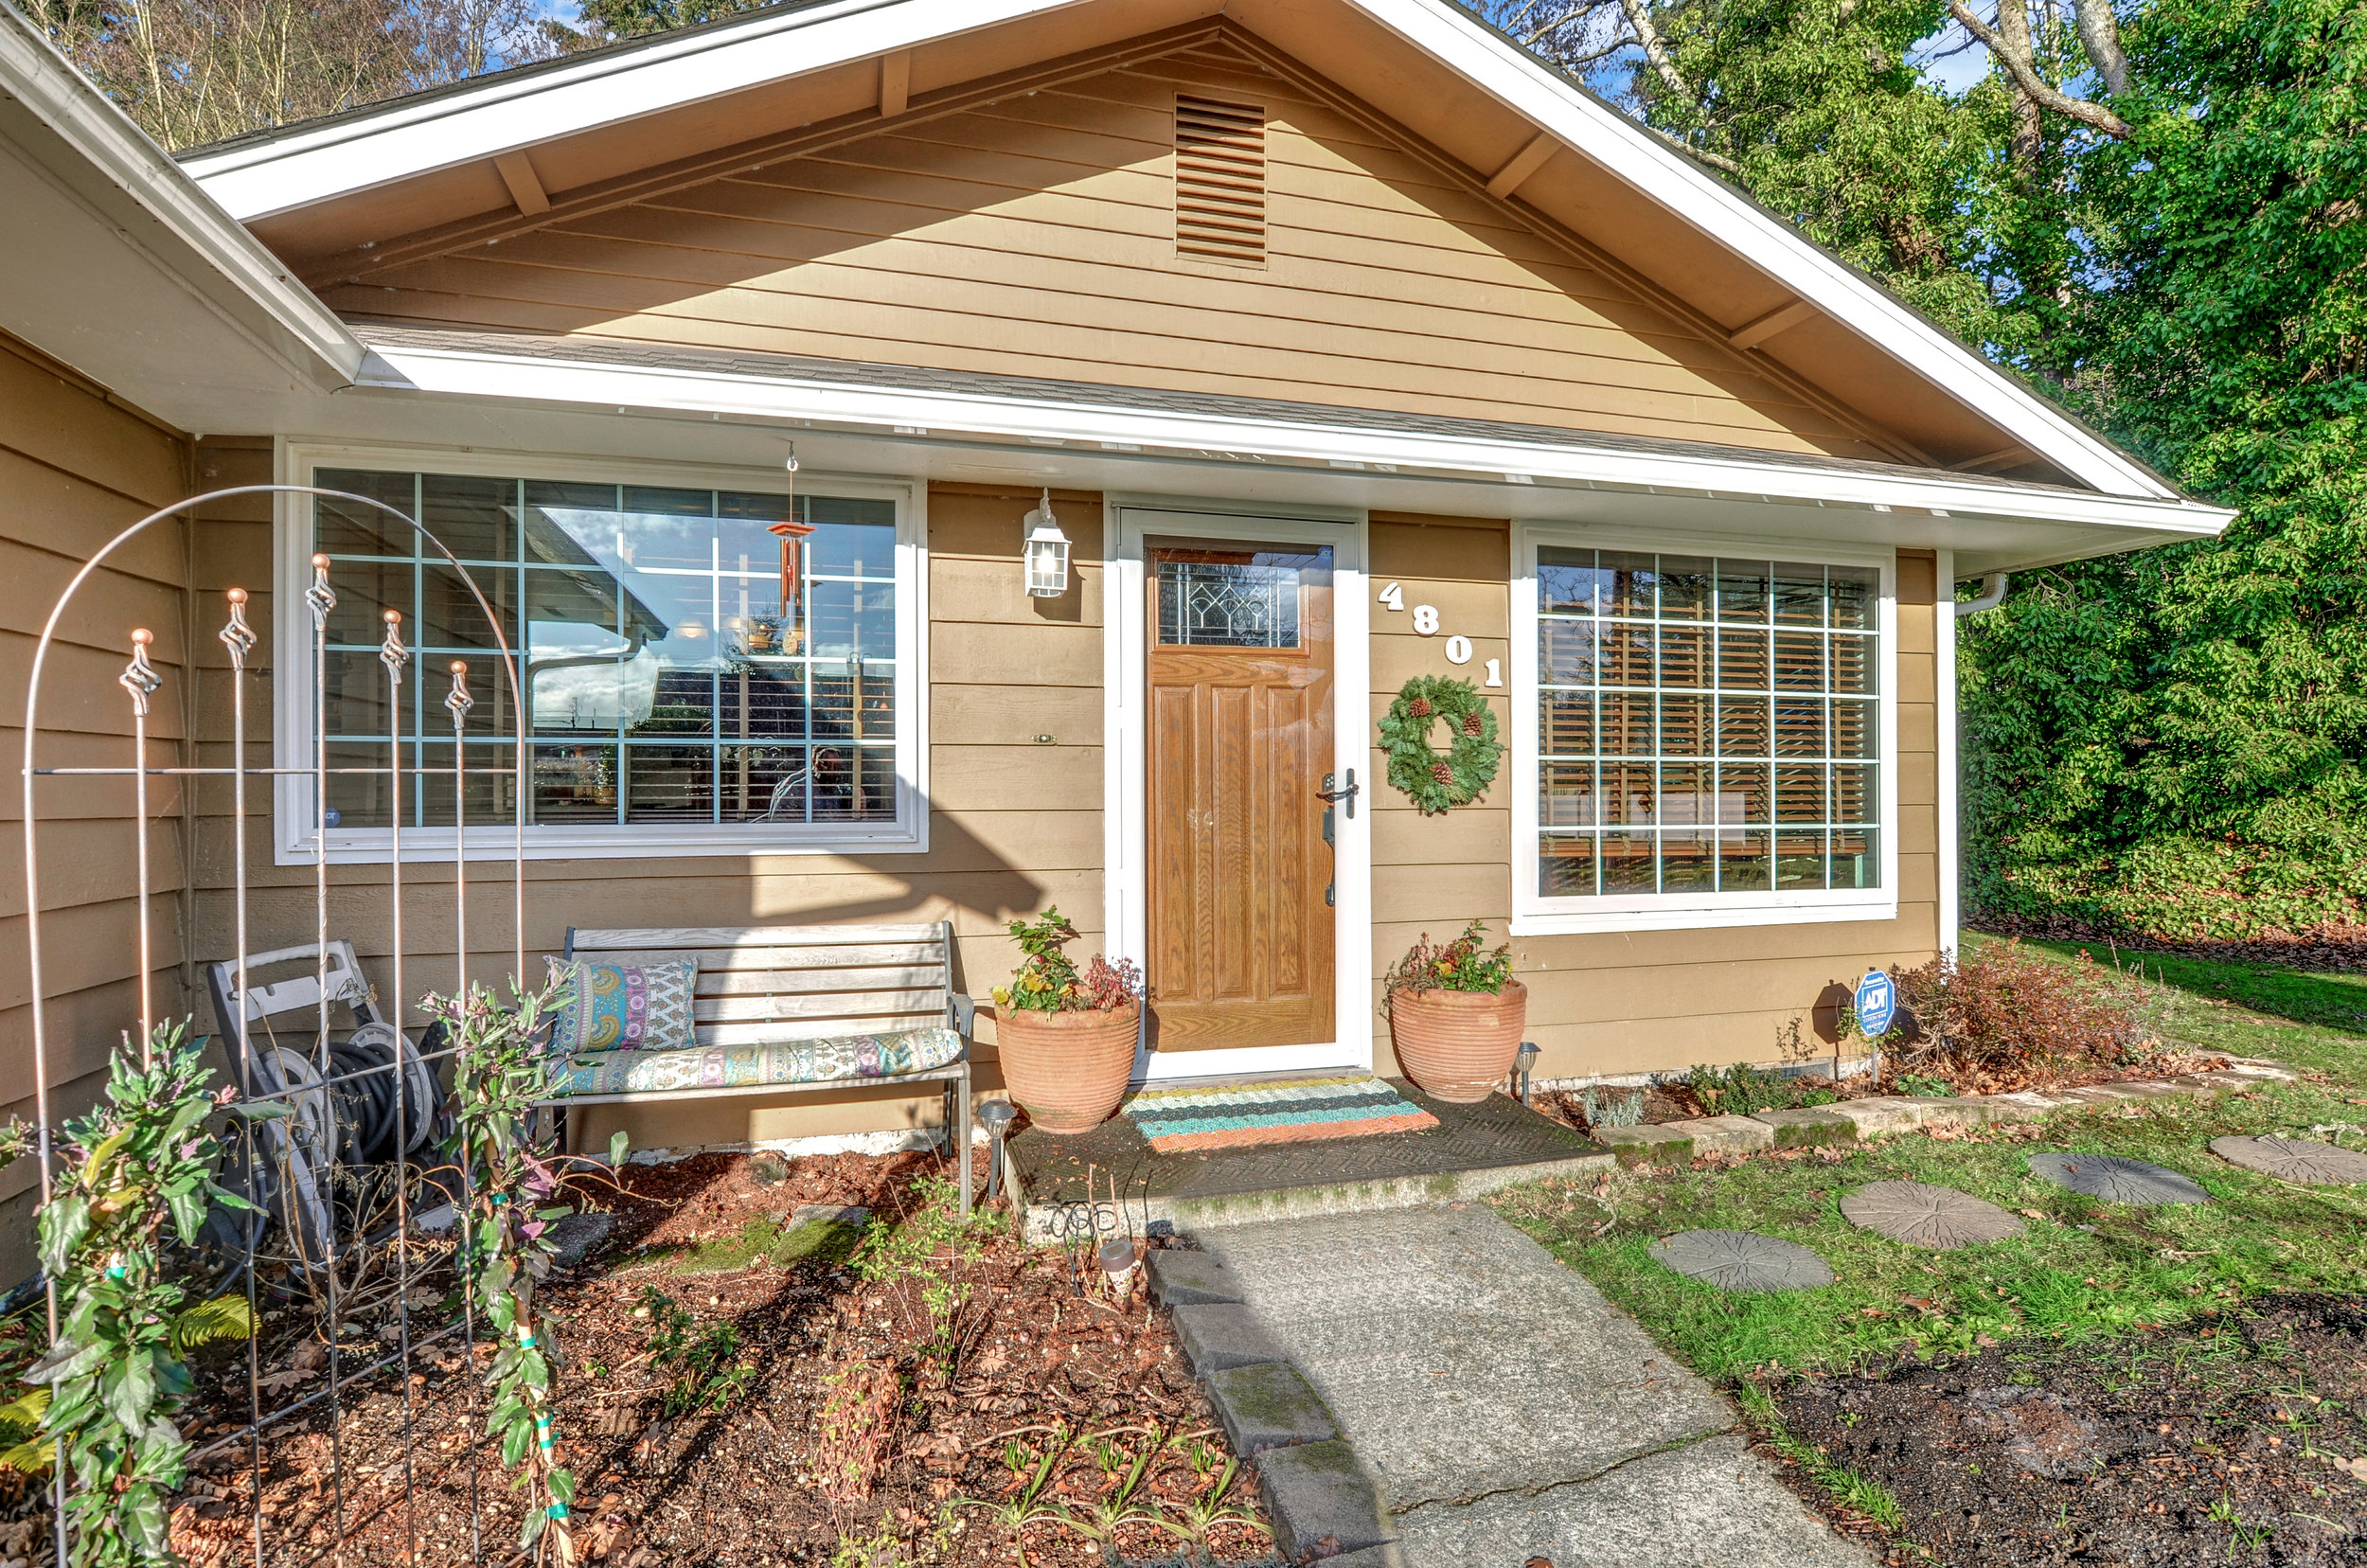 A paved path beside garden beds and lawn leads to the front door of 4801.